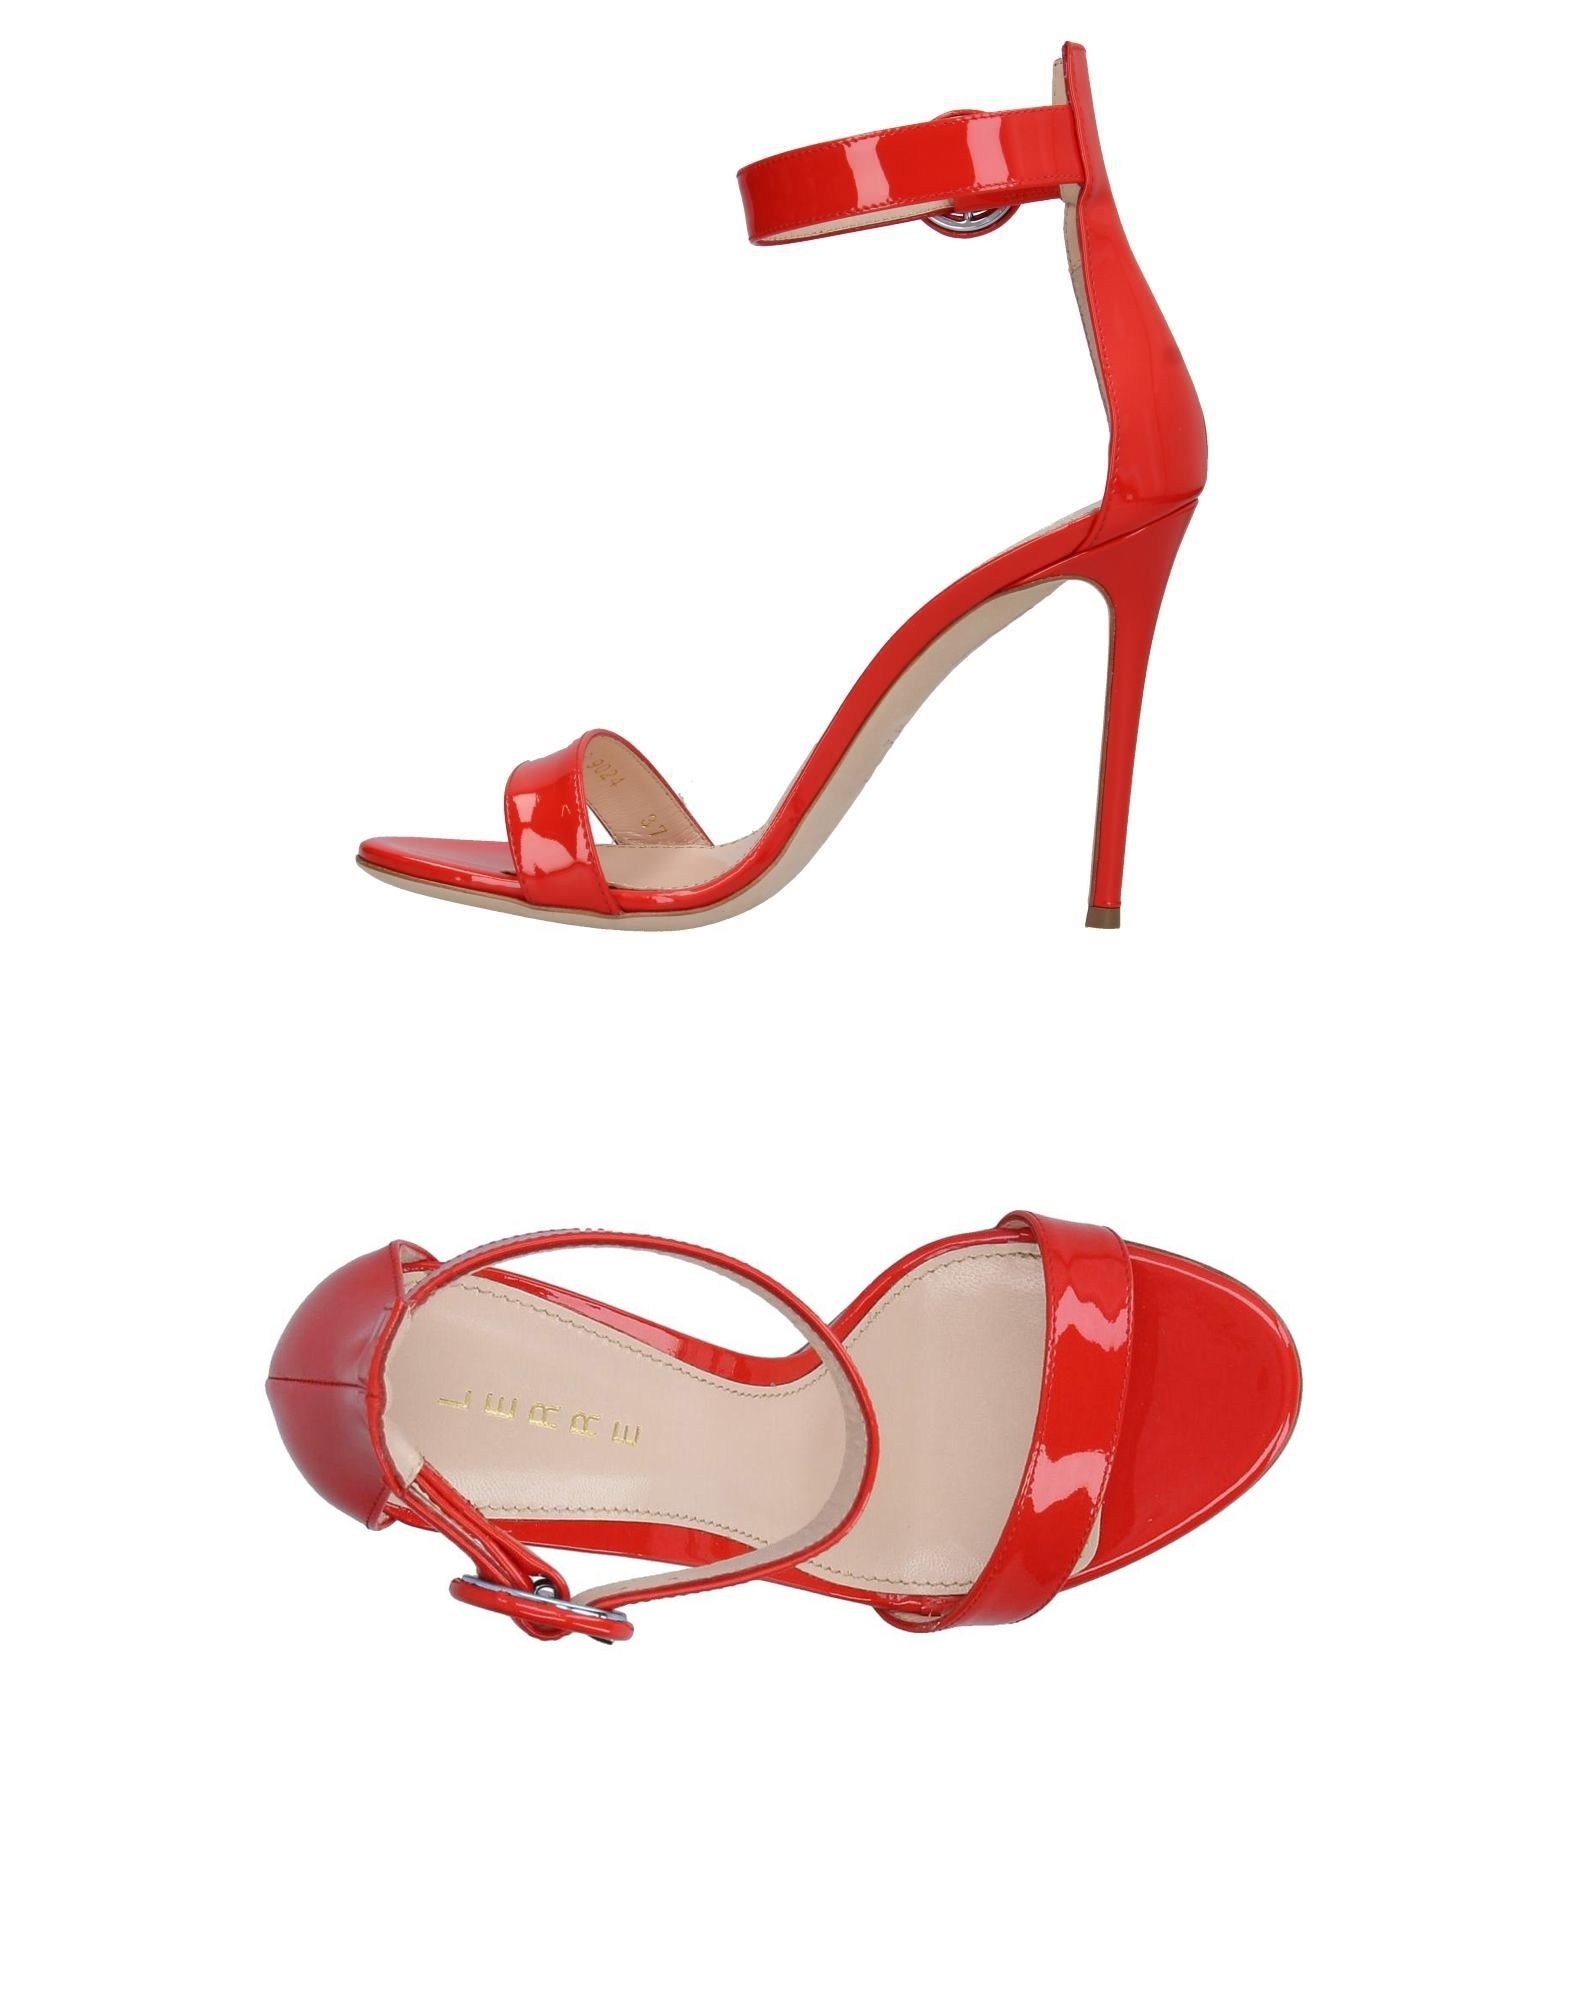 LERRE Sandals in Red